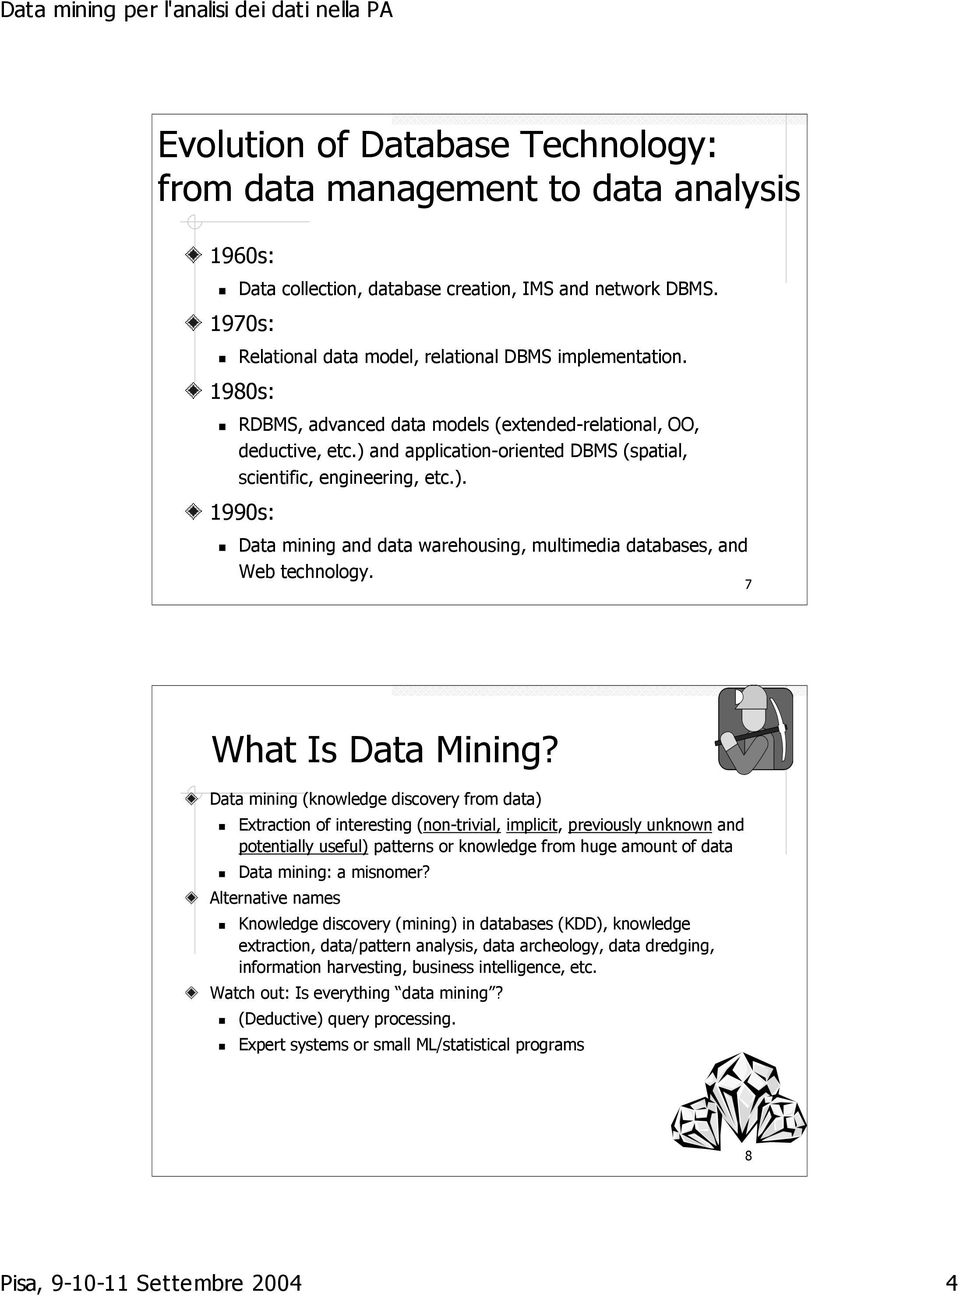 7 What Is Data Mining?